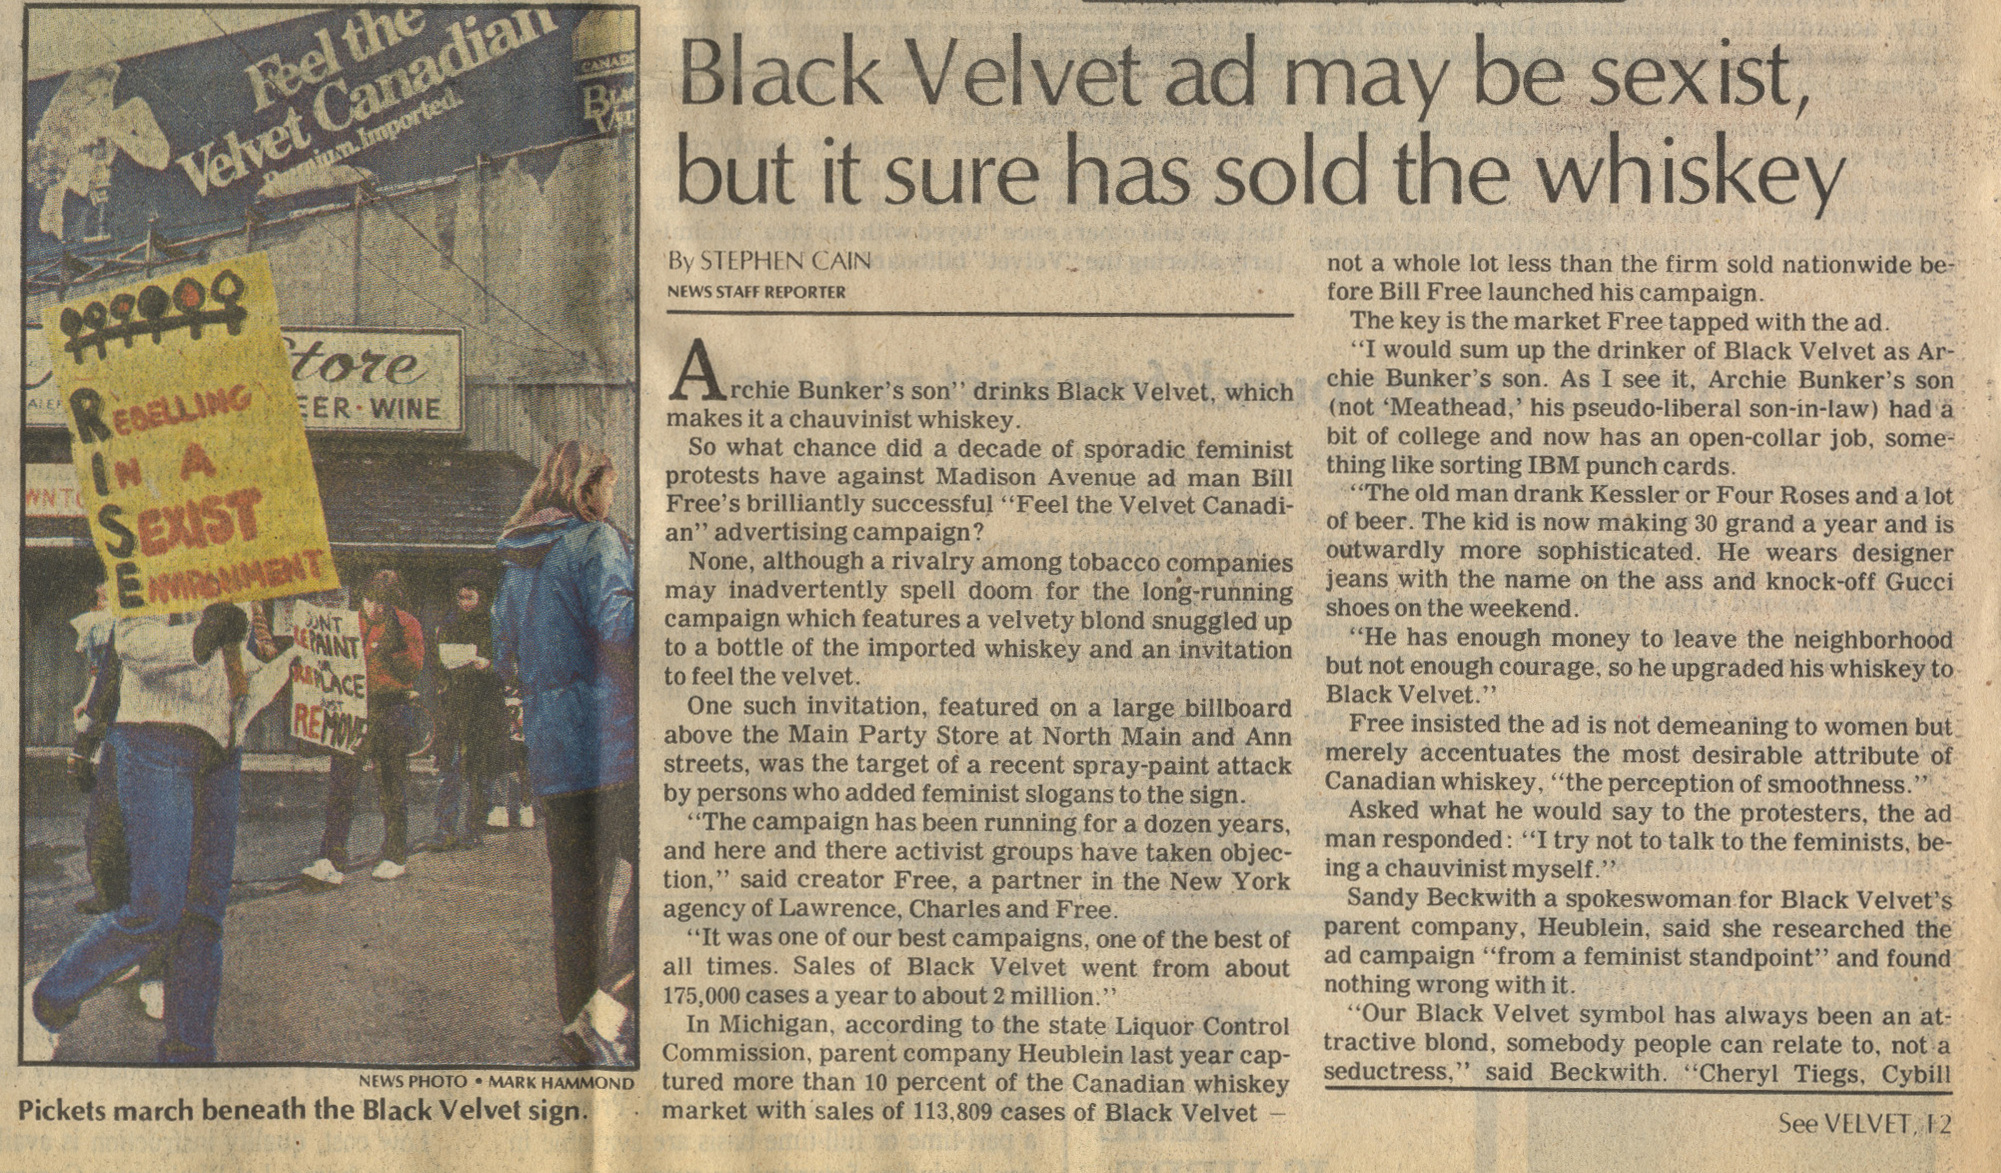 Black Velvet Ad May Be Sexist, But It Sure Has Sold The Whiskey image